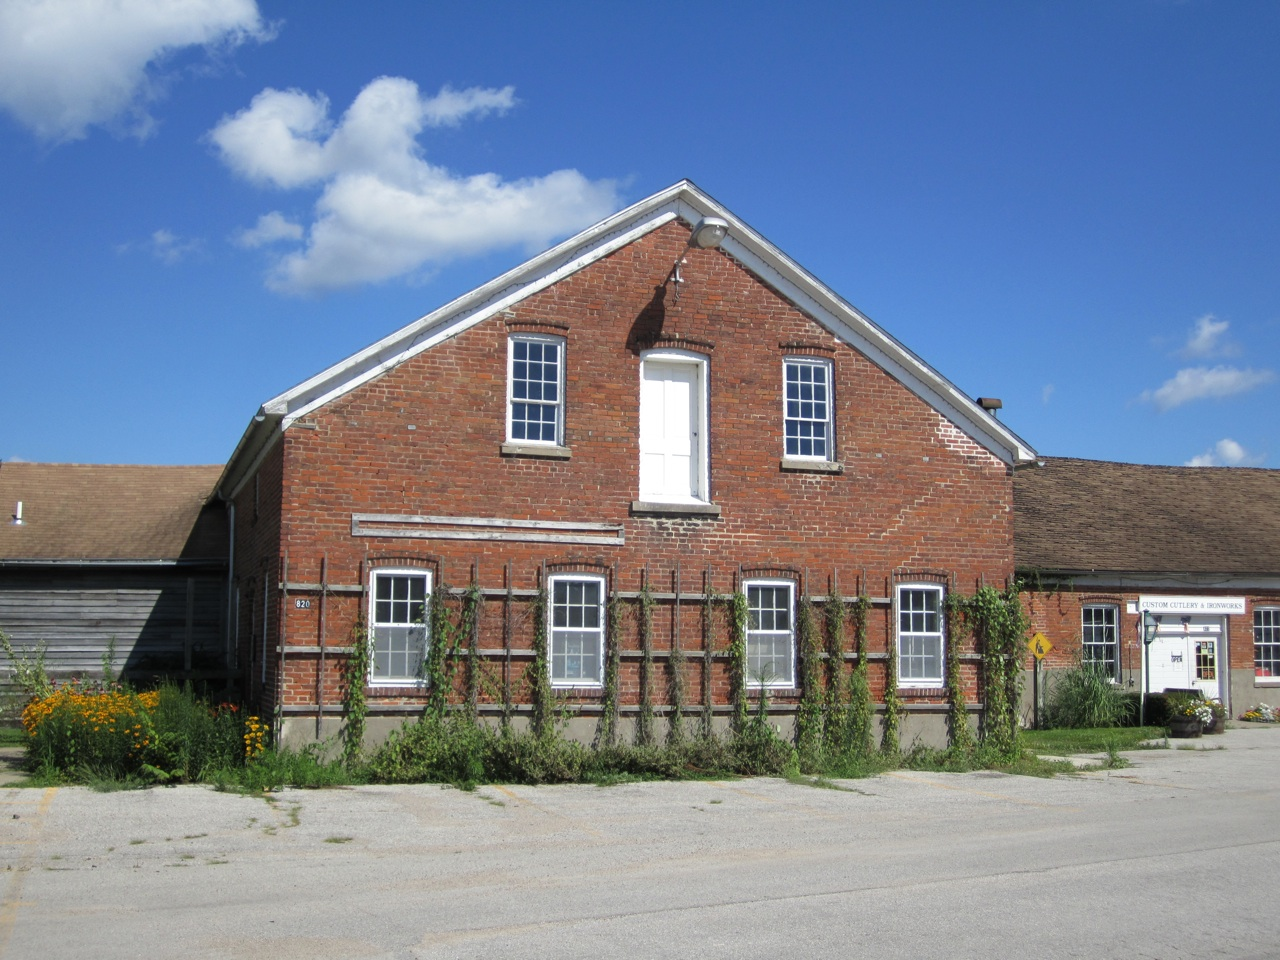 The Outside Of The Cutlery And Ironworks Building. Note The Traditional Amana Architecture With The Grape Vine Trellises.